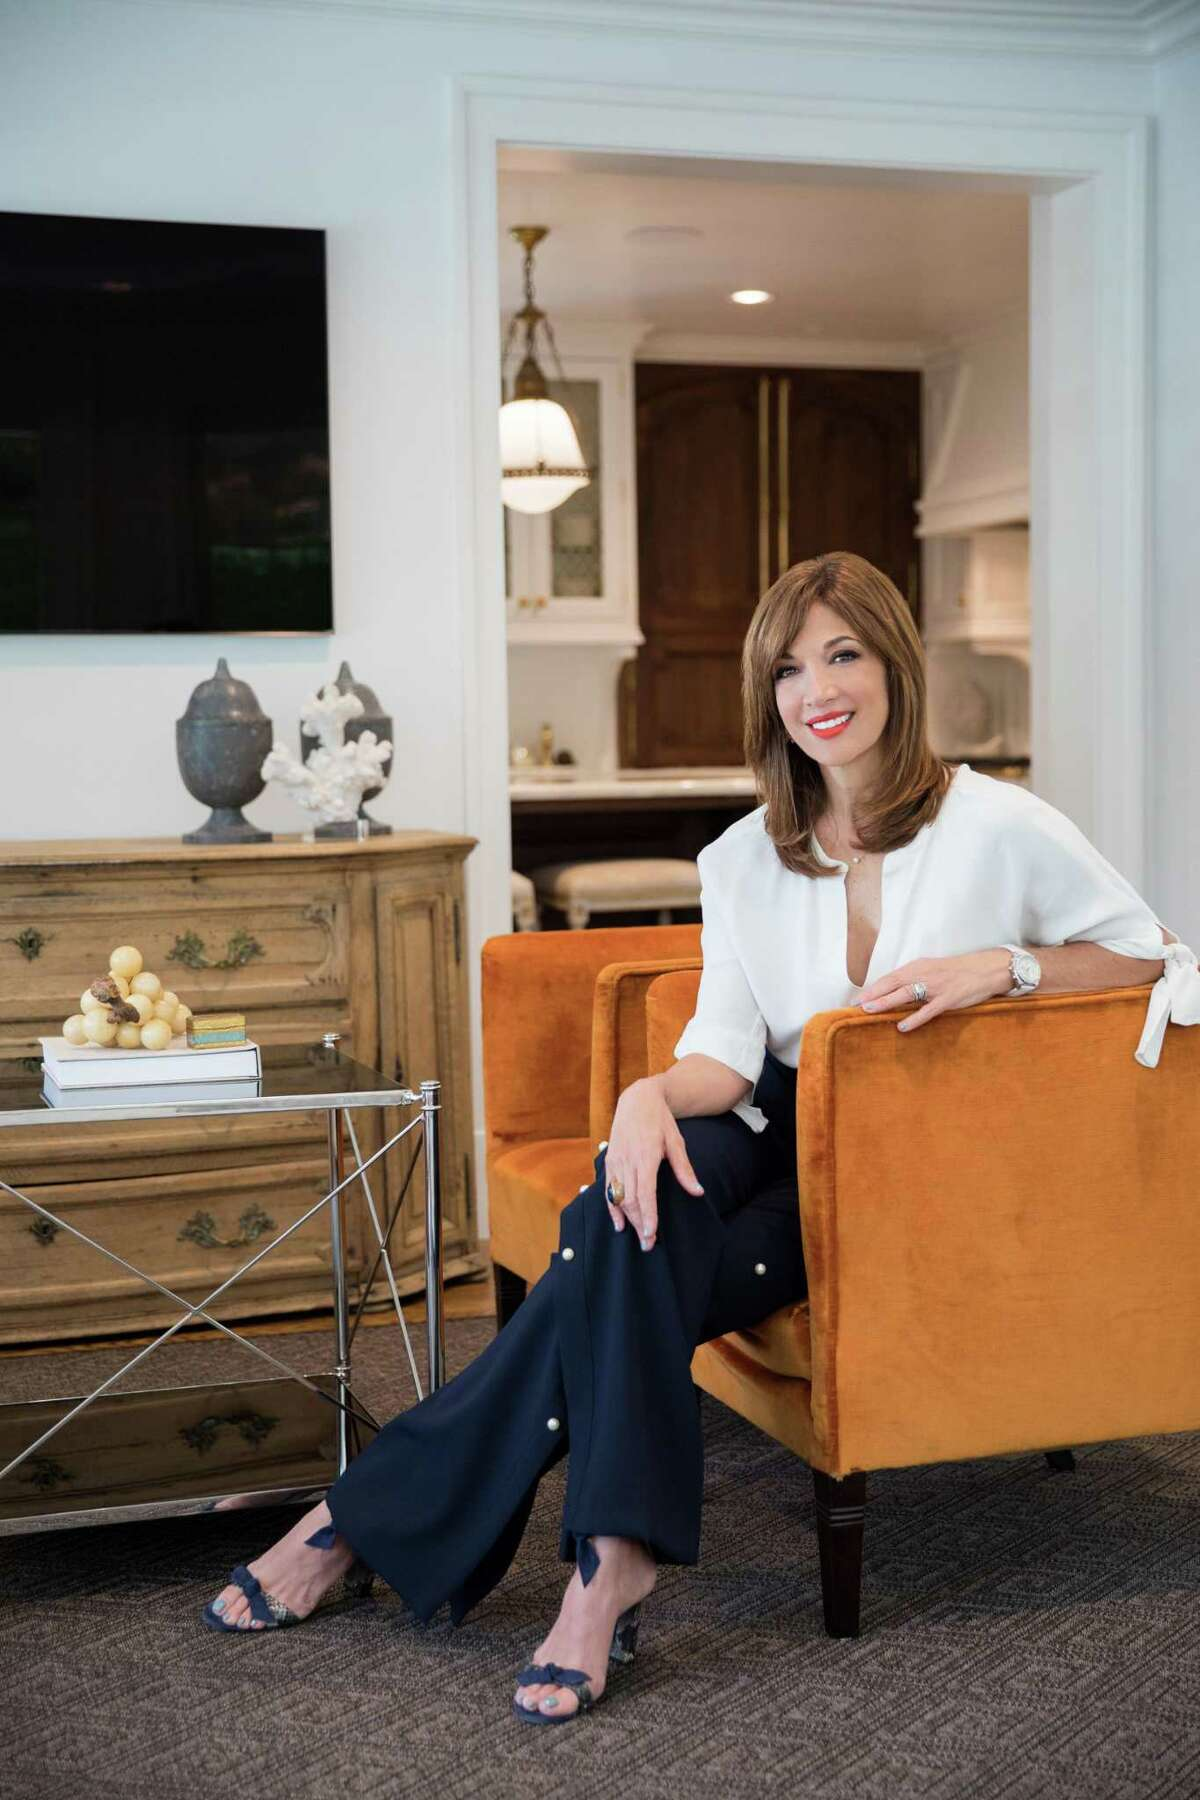 Lisa Kornhauser, a top Houston real estate agent, has joined Compass from John Daugherty Realtors.